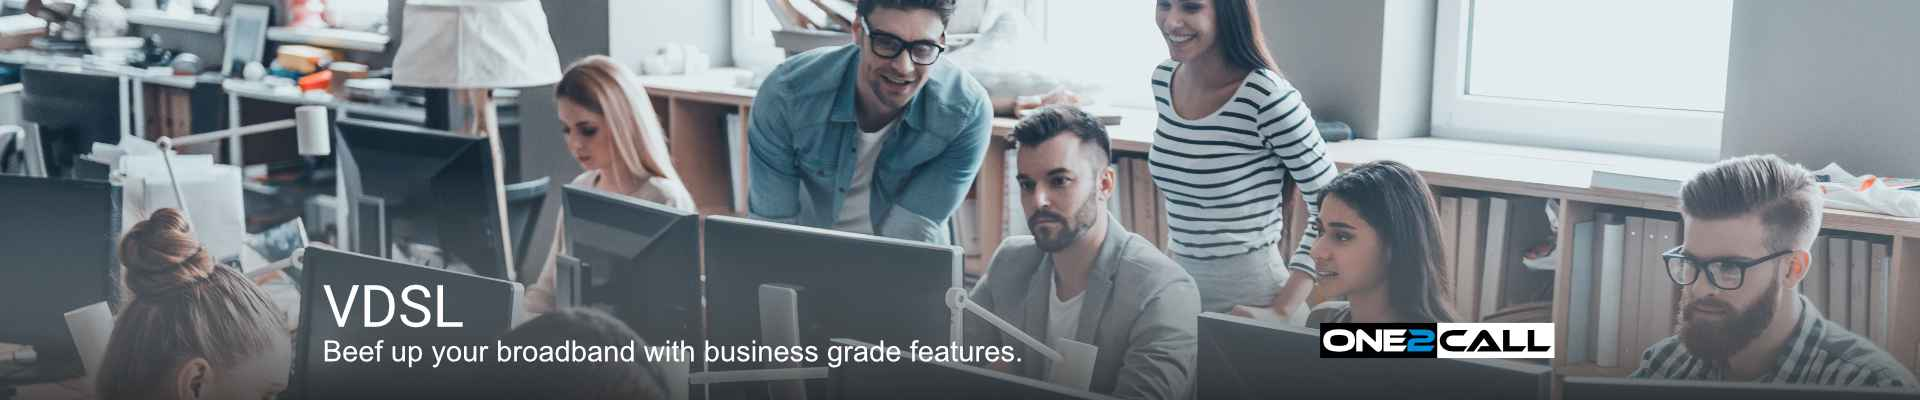 VDSL - Beef up your broadband with business grade features.